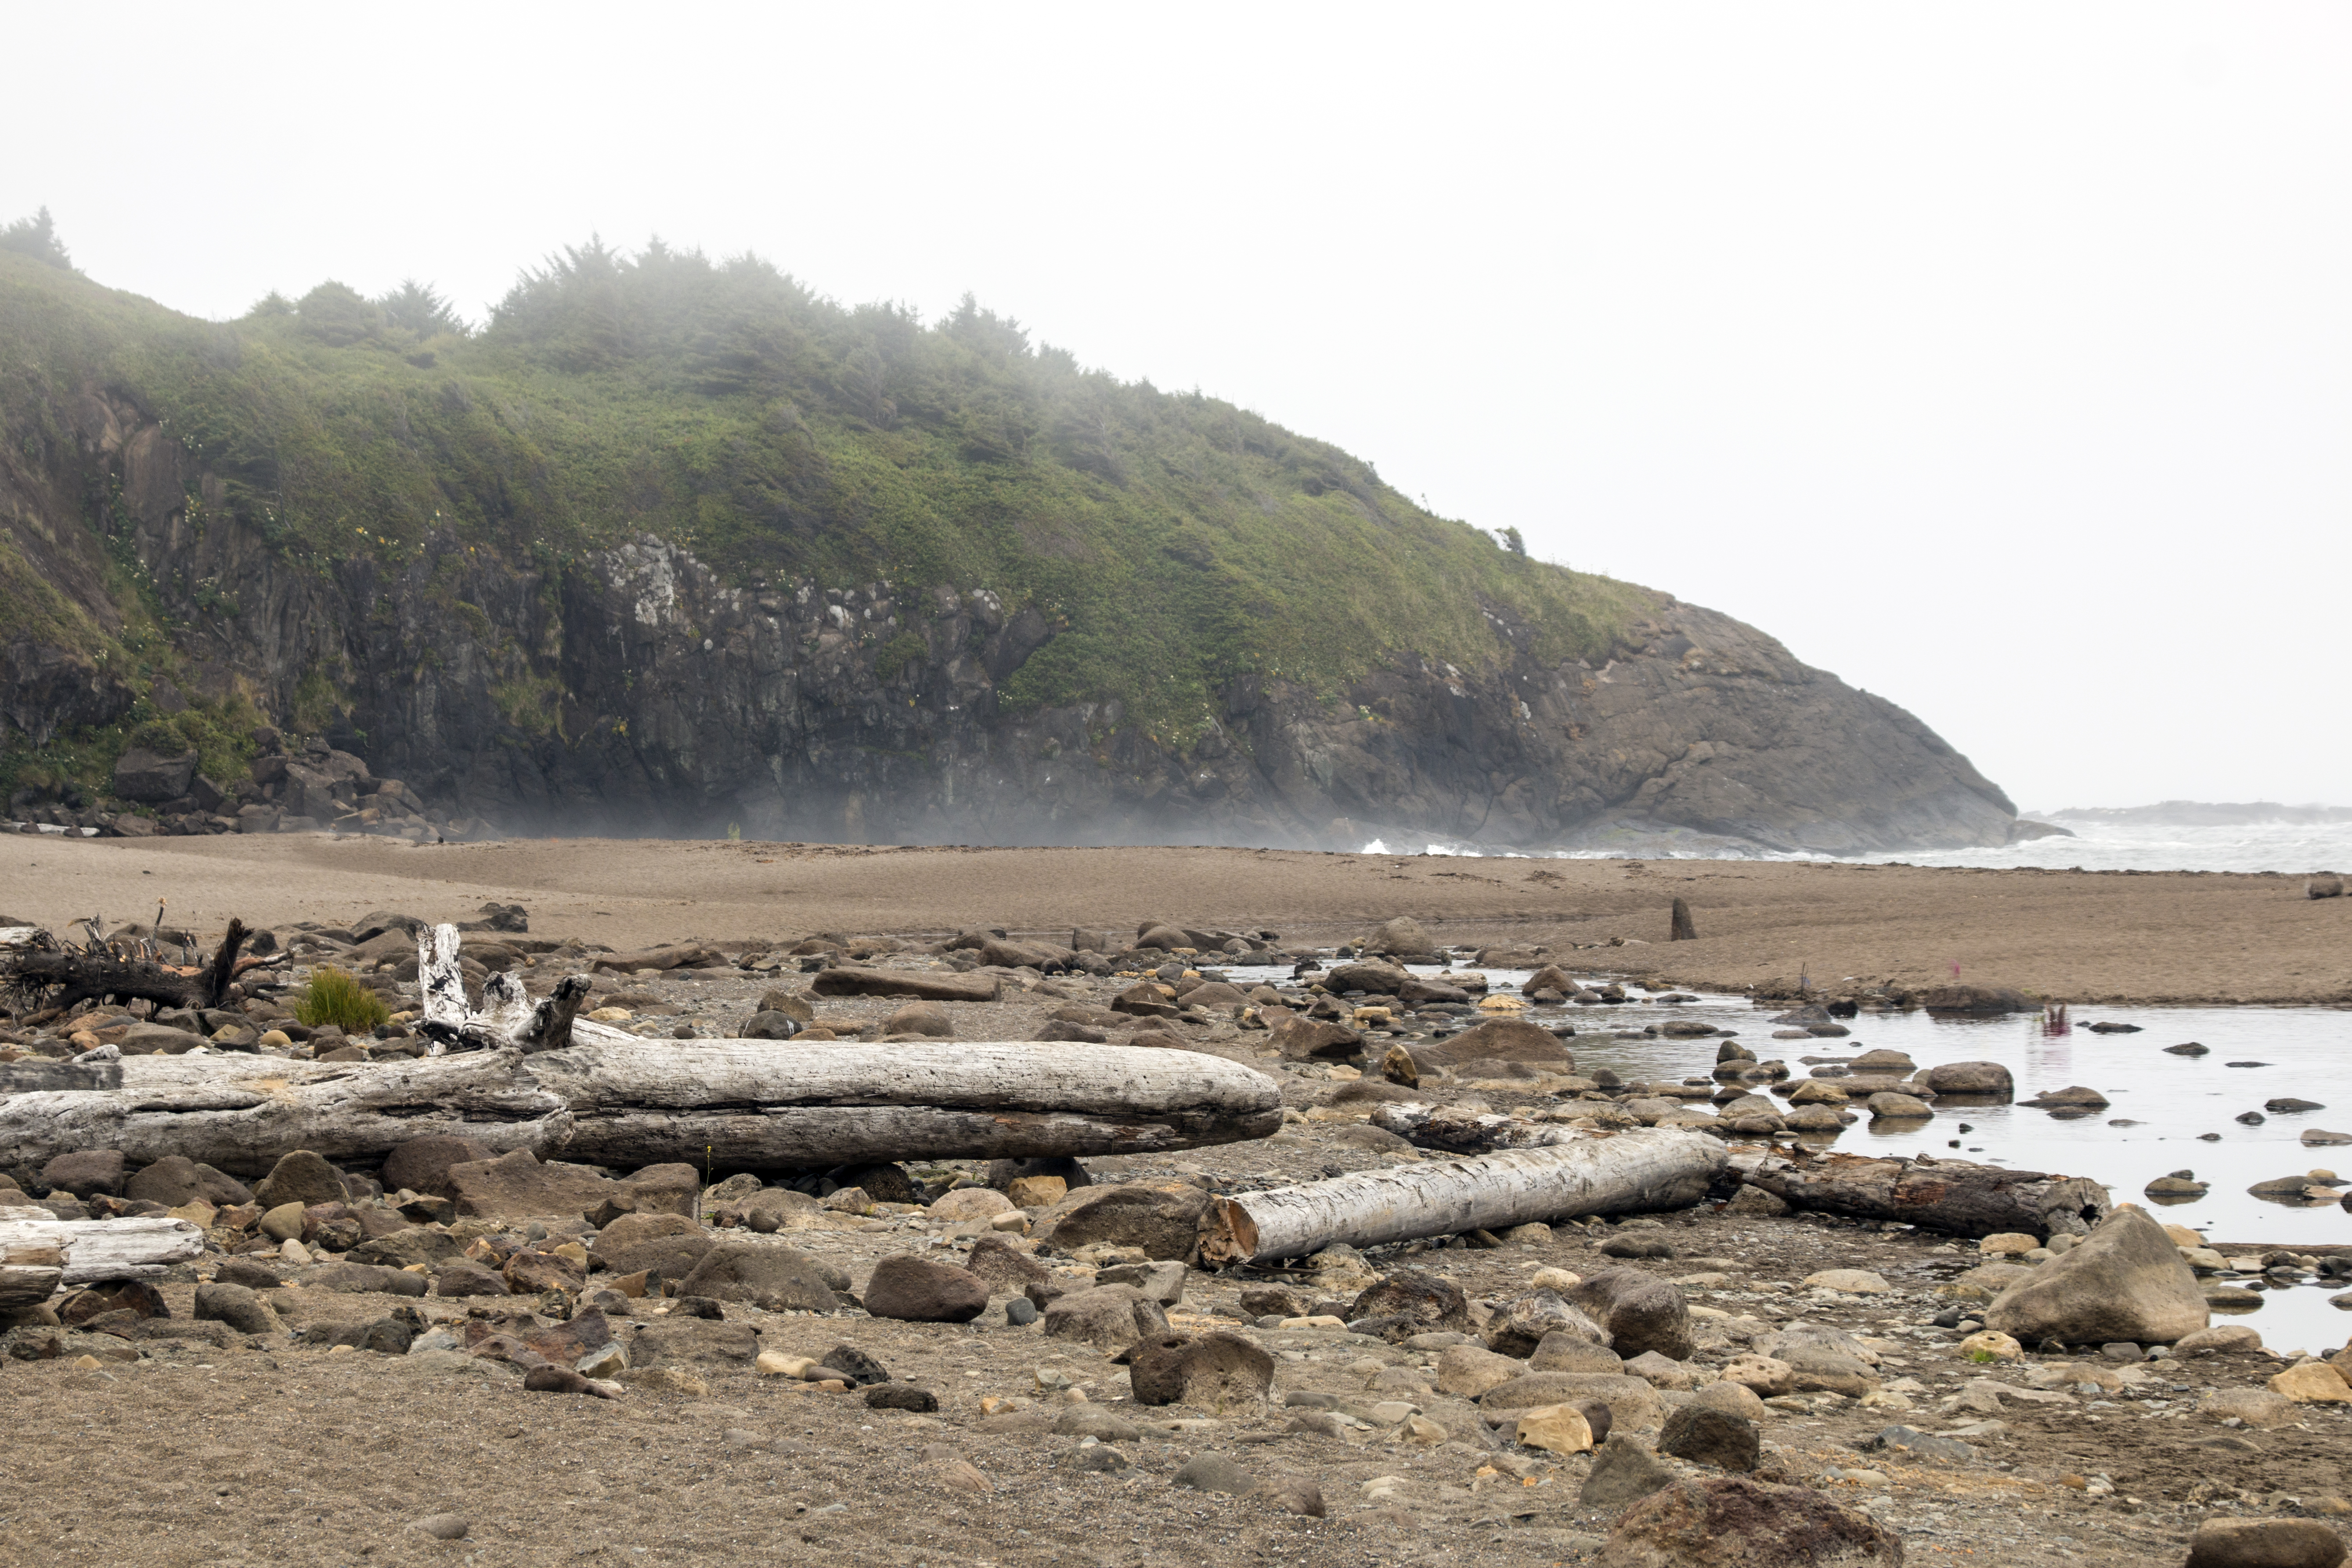 Hug point beach, oregon, foggy day photo